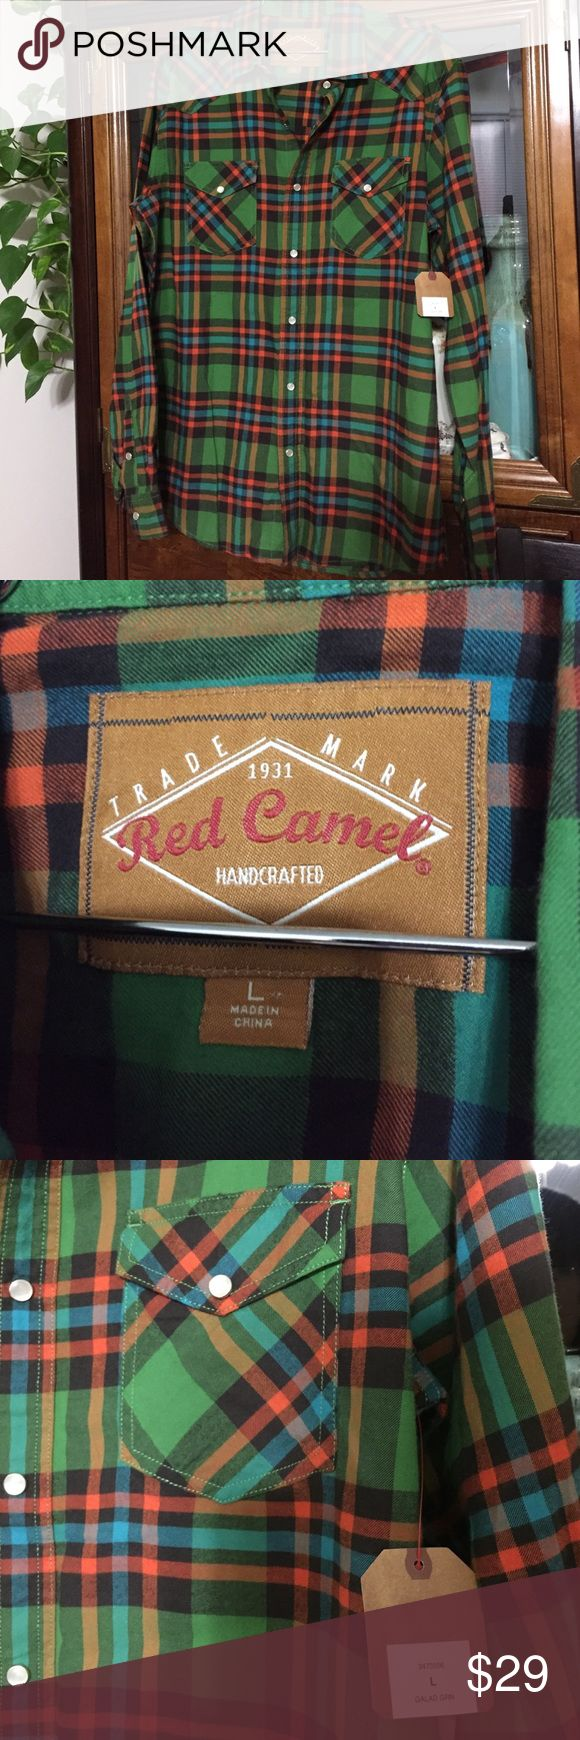 Red Camel NWT Men's Shirt Size Large This classic large men's shirt is multicolored plaid in orange-red, greens, real-blue & black - snaps down the front - handsomely stylish. Red Camel Shirts Casual Button Down Shirts